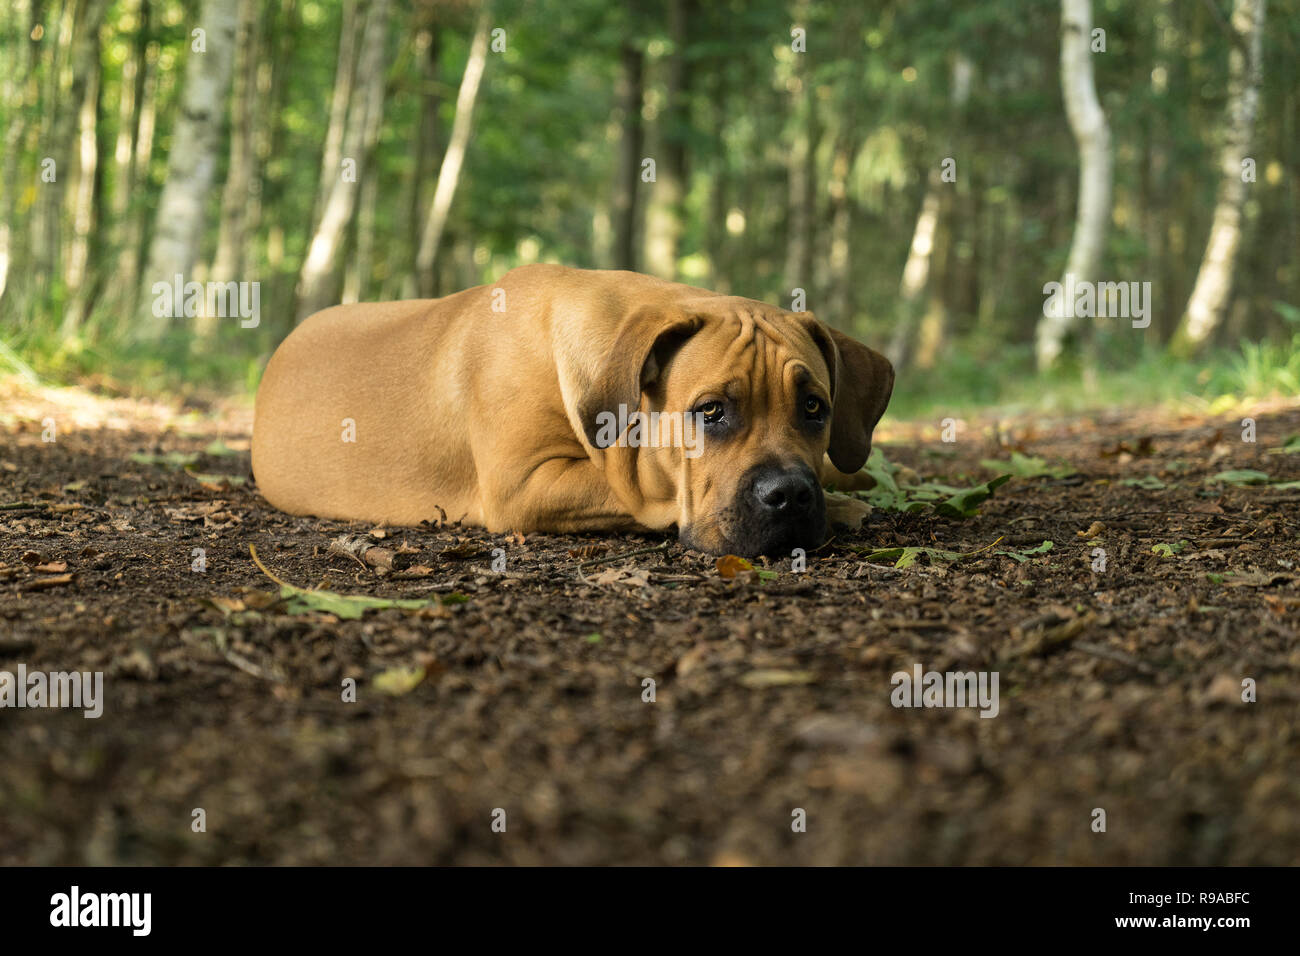 10 months young boerboel or South African Mastiff pup lying down with his head on the floor seen from the front in a forrest setting Stock Photo